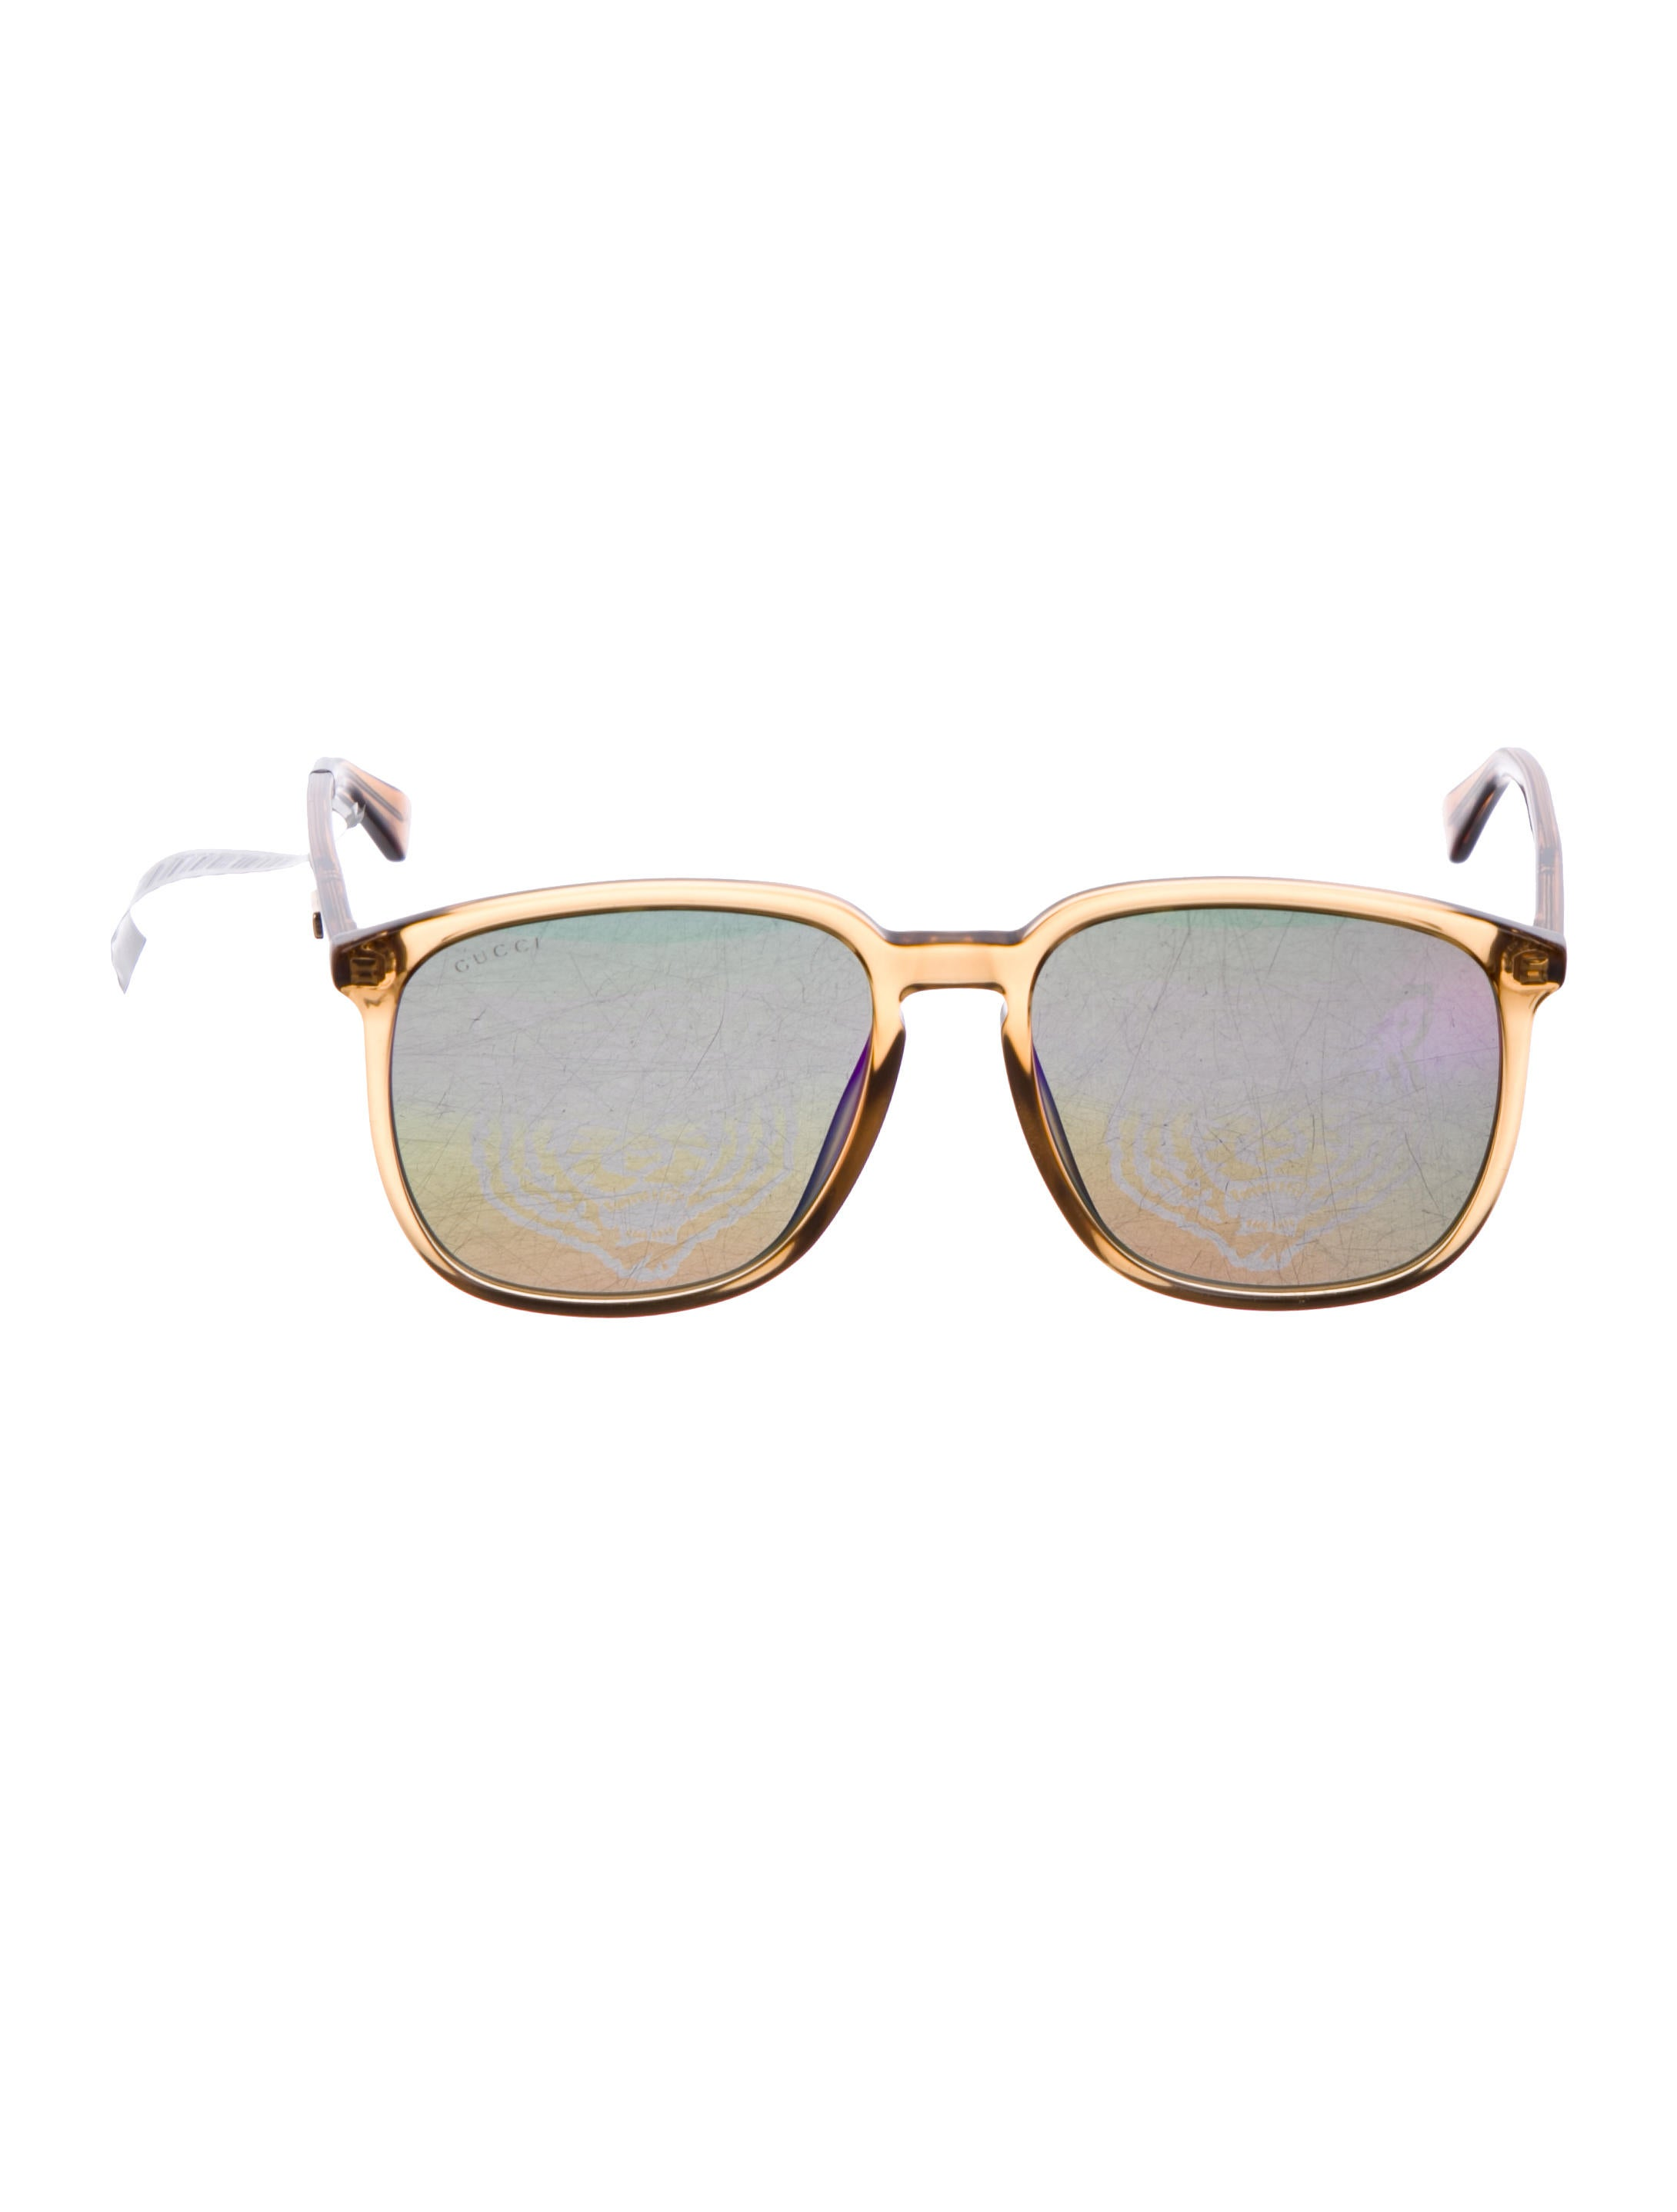 acff482d18c Gucci Holographic Oversize Sunglasses w  Tags - Accessories ...